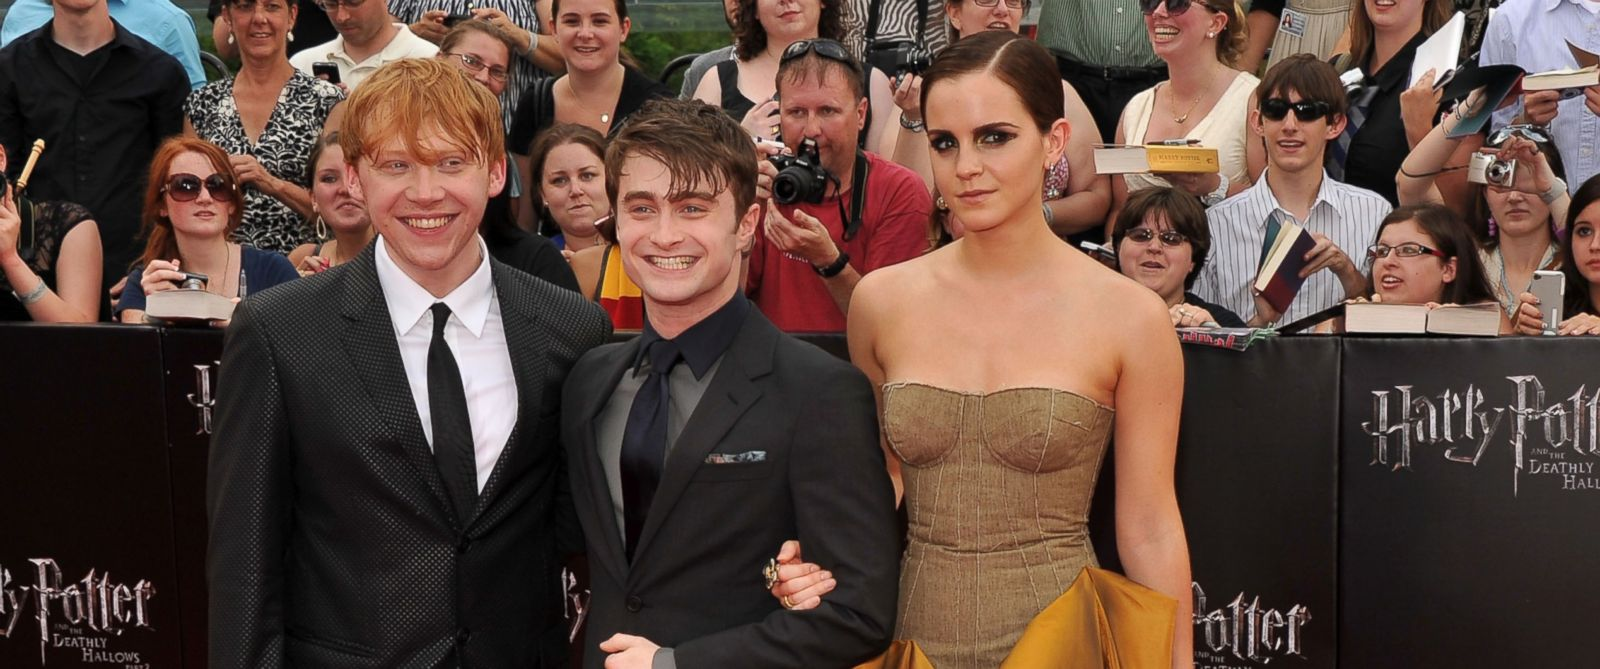 "PHOTO: Left to right, Rupert Grint, Daniel Radcliffe and Emma Watson attend the New York premiere of ""Harry Potter And The Deathly Hallows: Part 2"" at Avery Fisher Hall, Lincoln Center in this July 11, 2011, file photo in New York City."